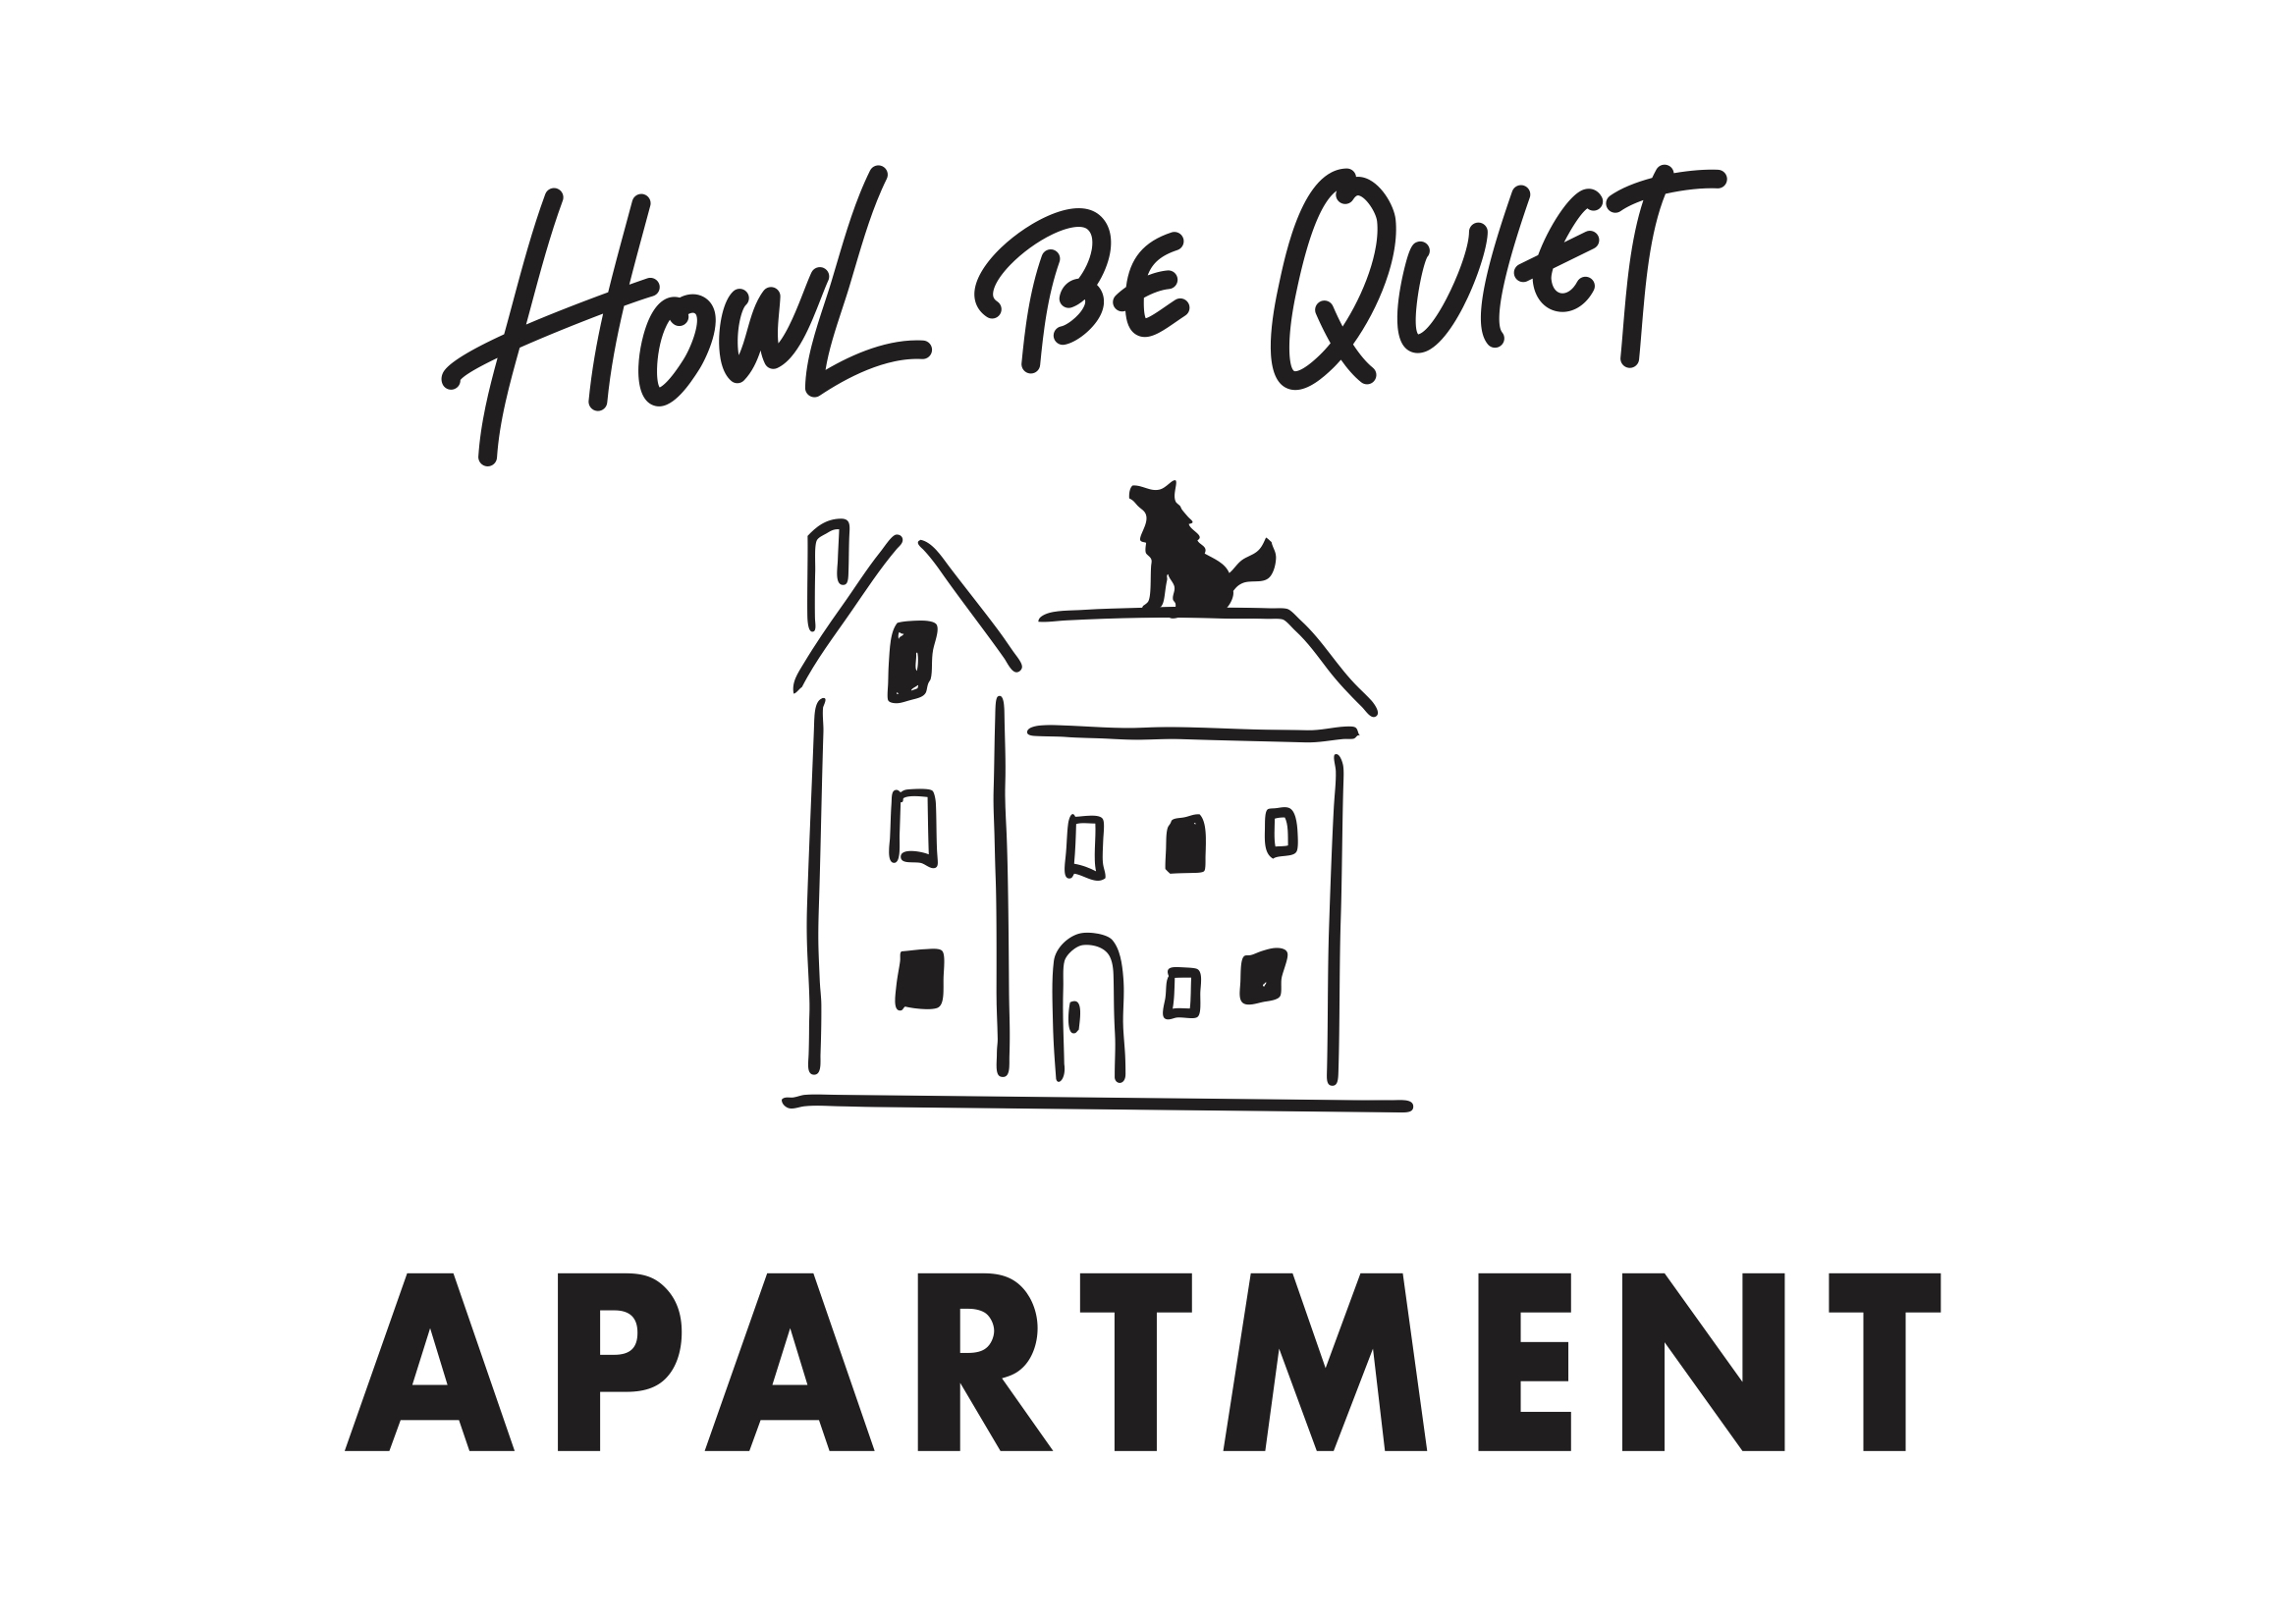 HOWL BE QUIET 新レーベル「APARTMENT」